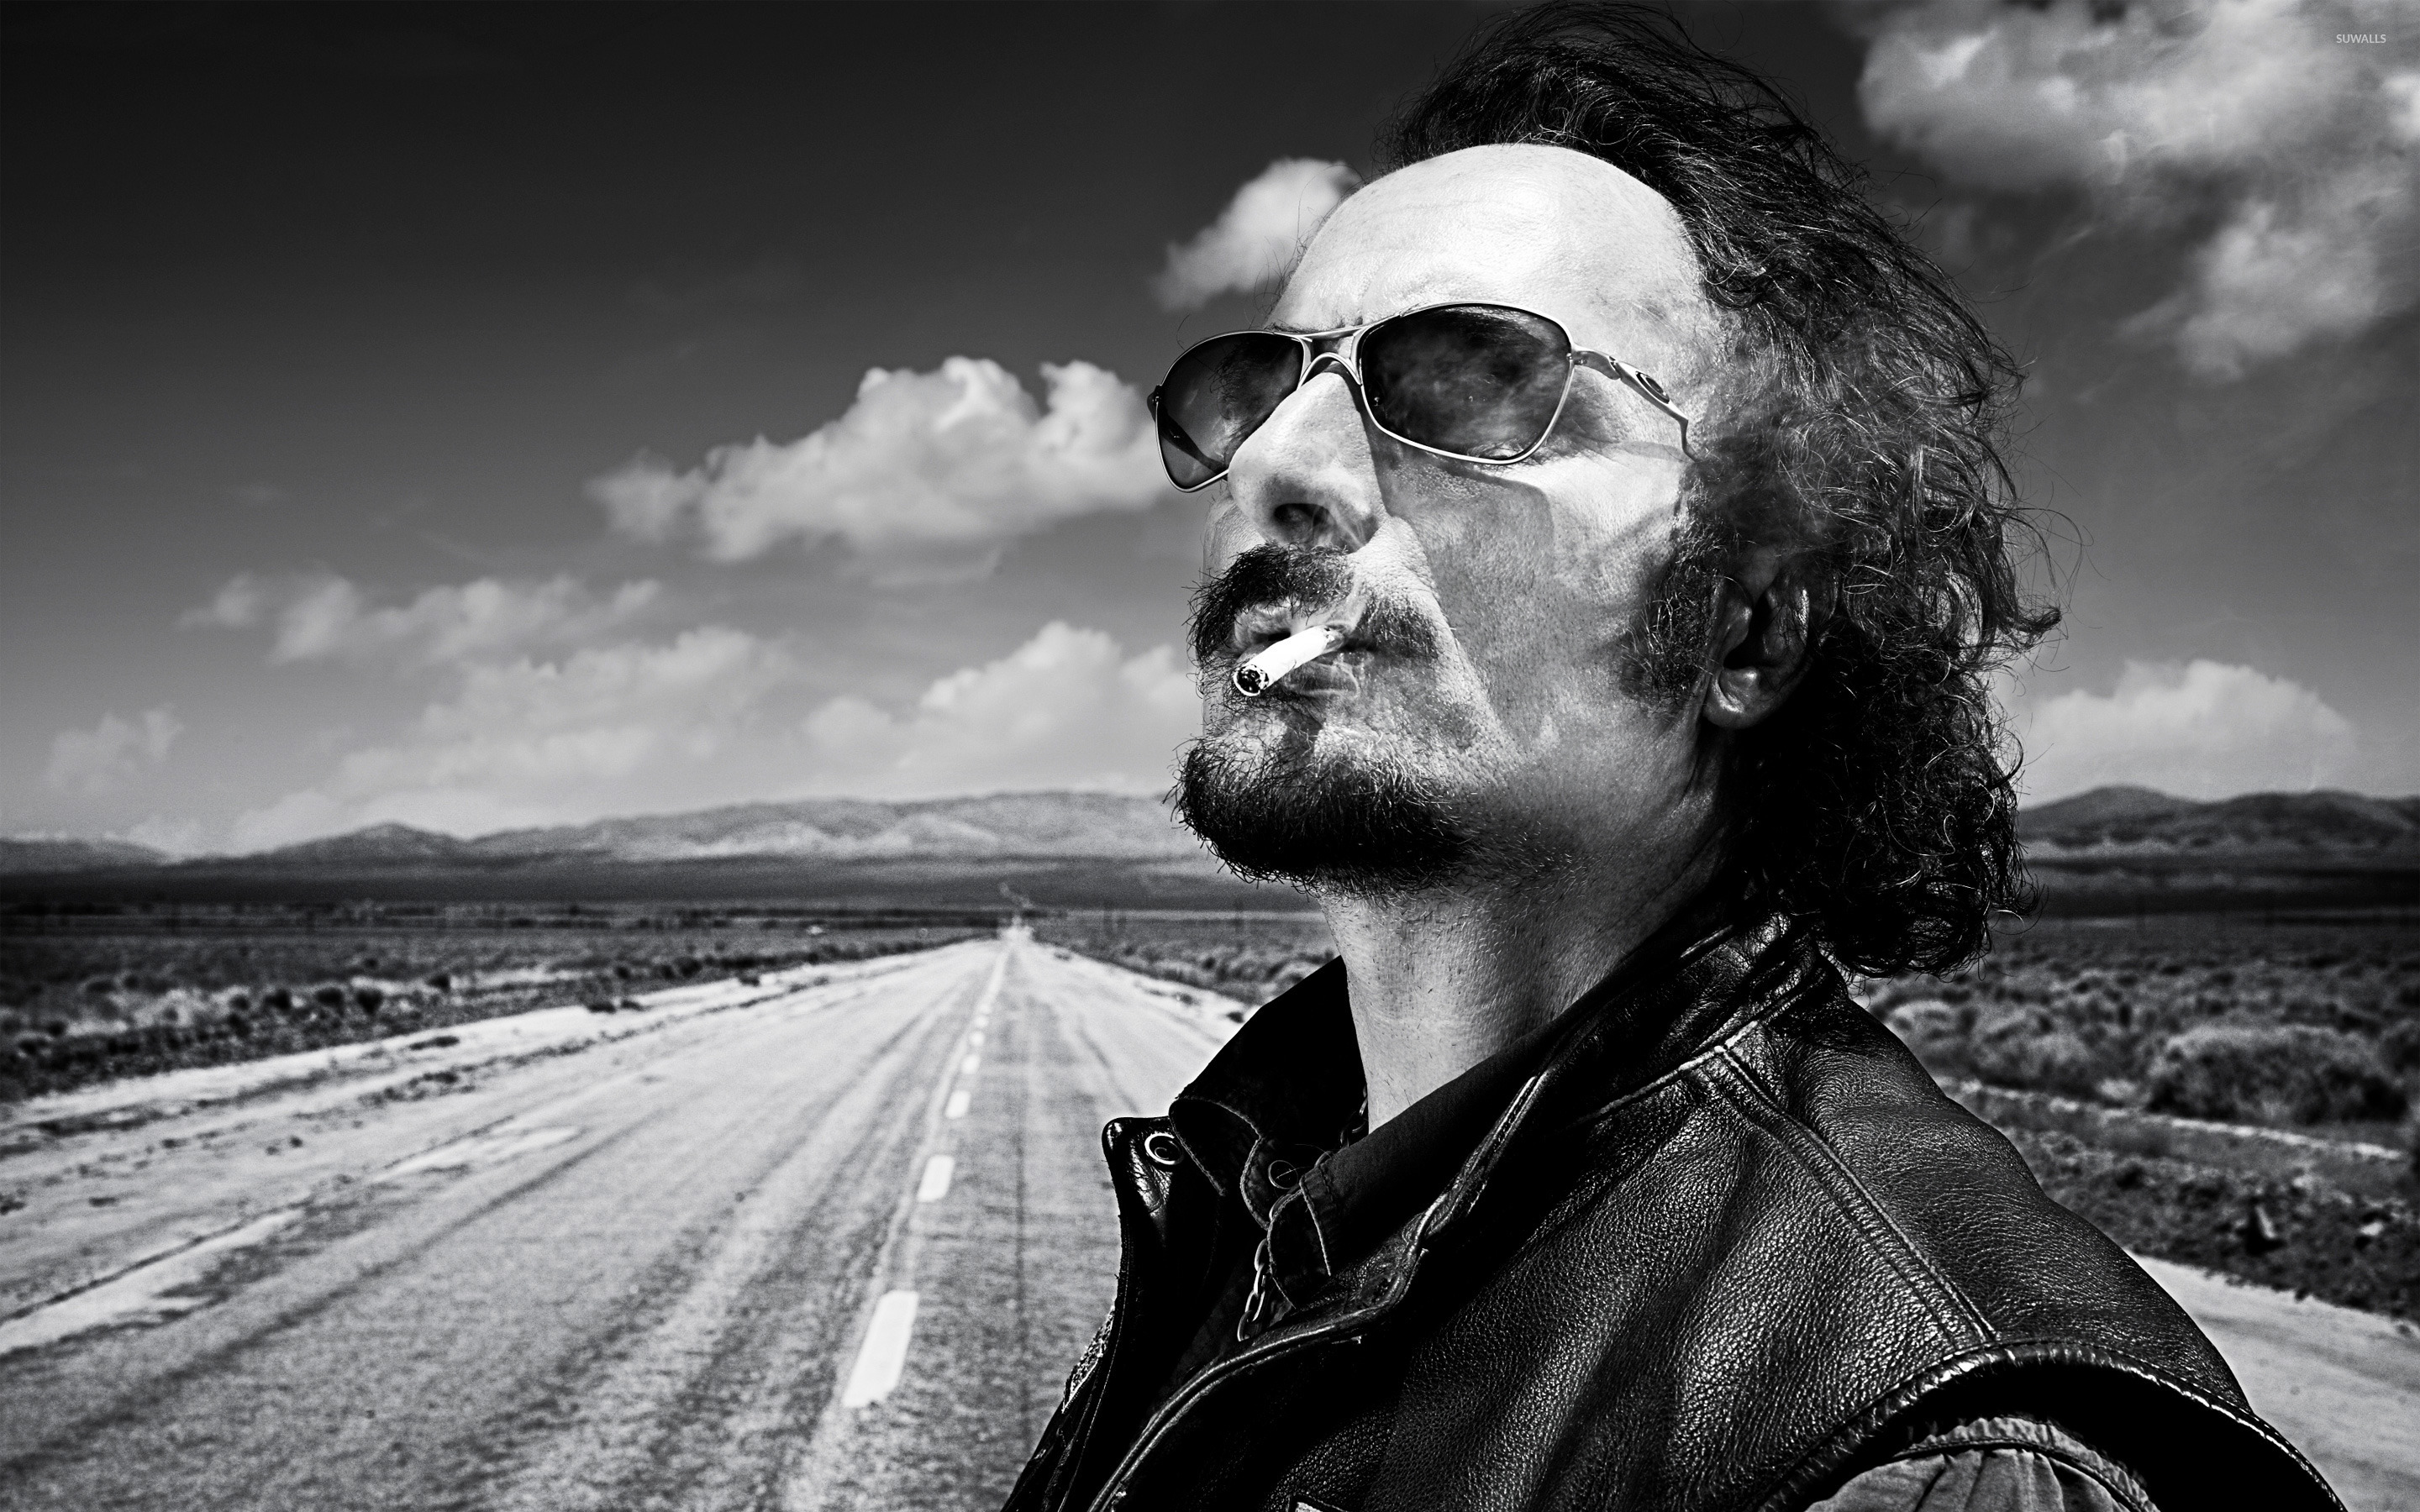 Tig sons of anarchy wallpaper tv show wallpapers 24537 tig sons of anarchy wallpaper voltagebd Gallery